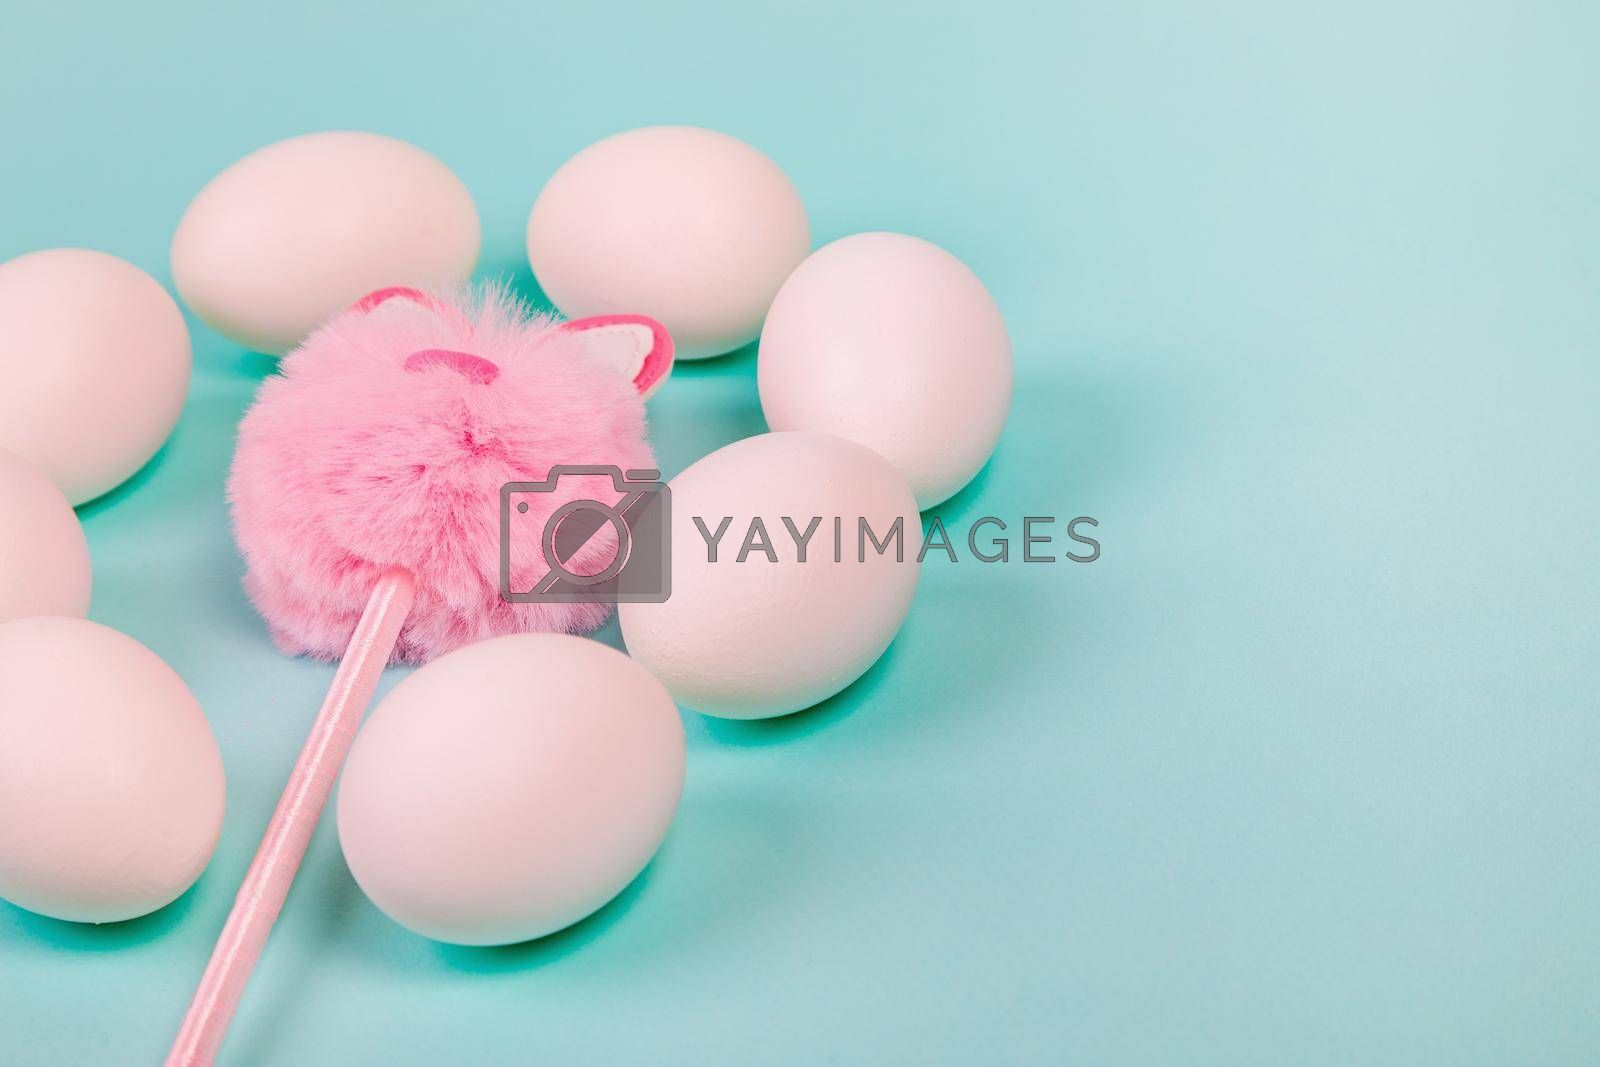 Easter. White eggs with an artificial rabbit on a uniform blue background. Place for text.